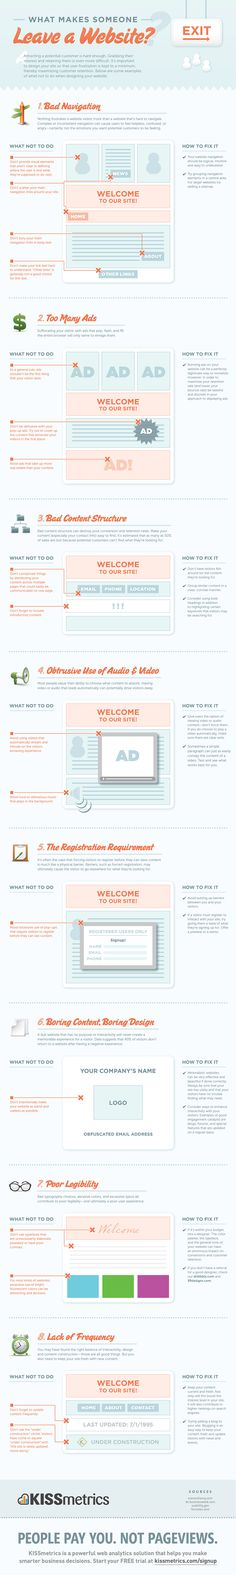 8 Reasons Behind Why People Are Leaving Your Website [Infographic]